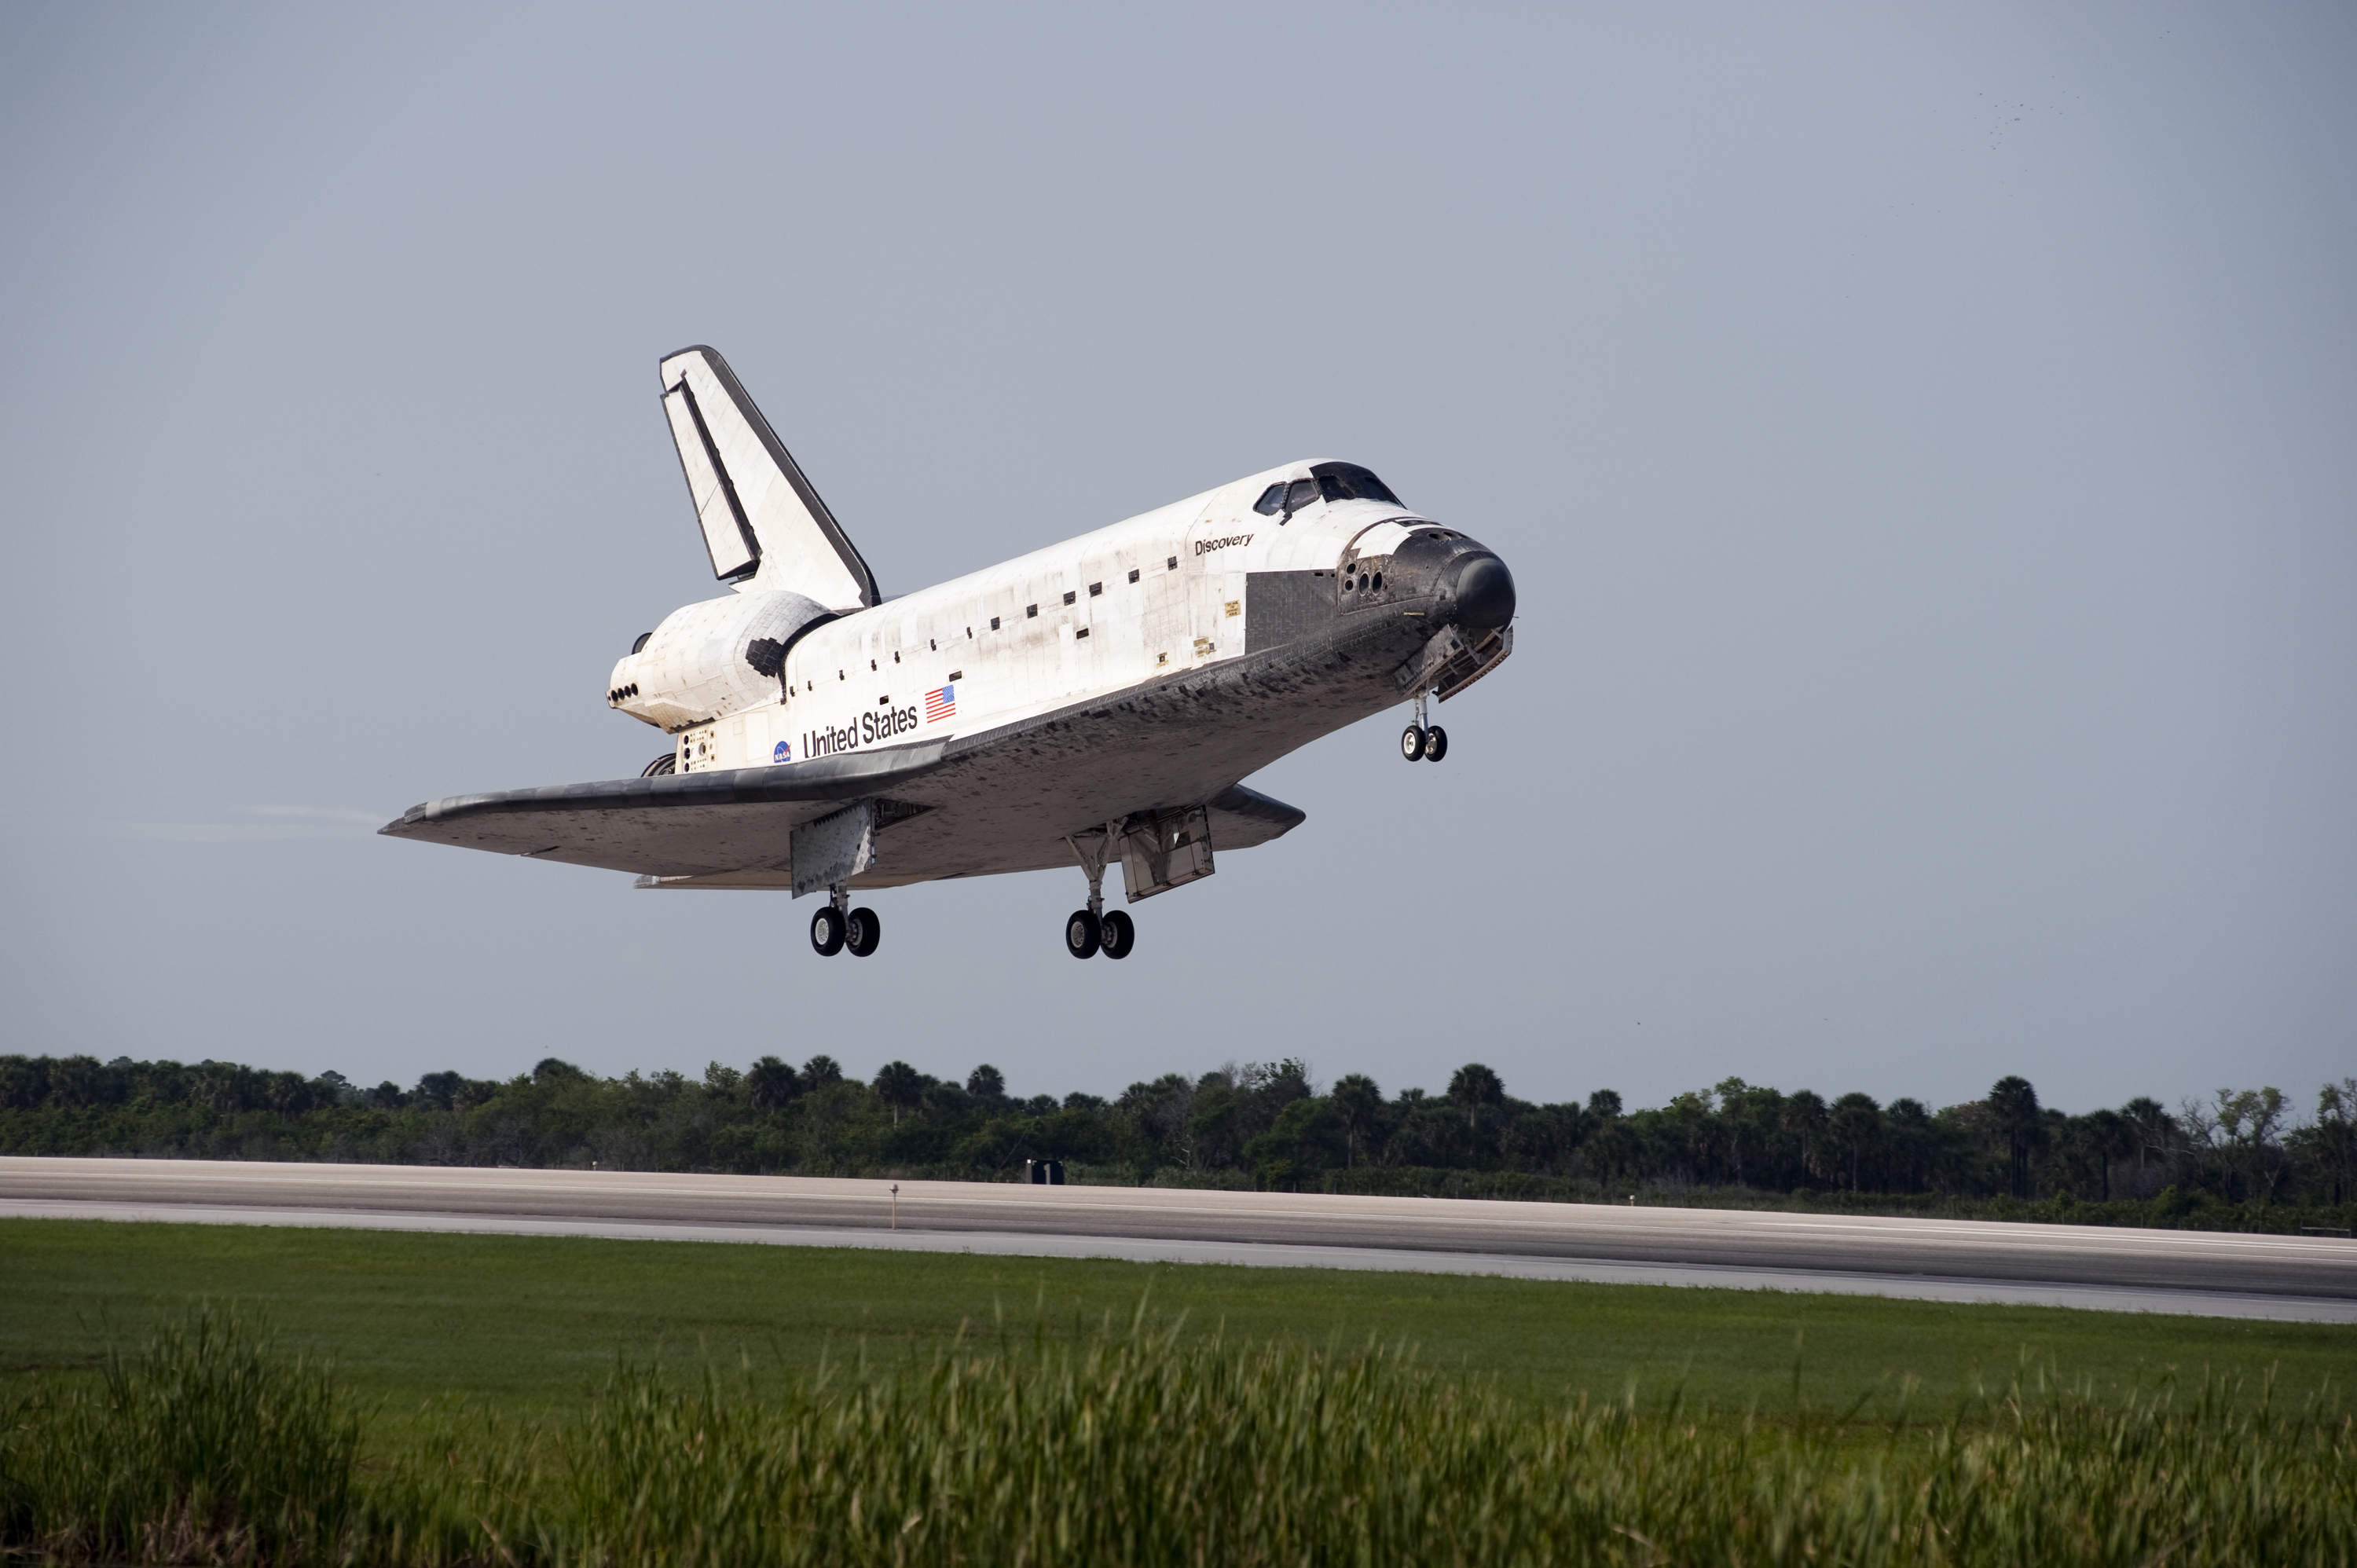 space shuttle discovery wallpaper - photo #18